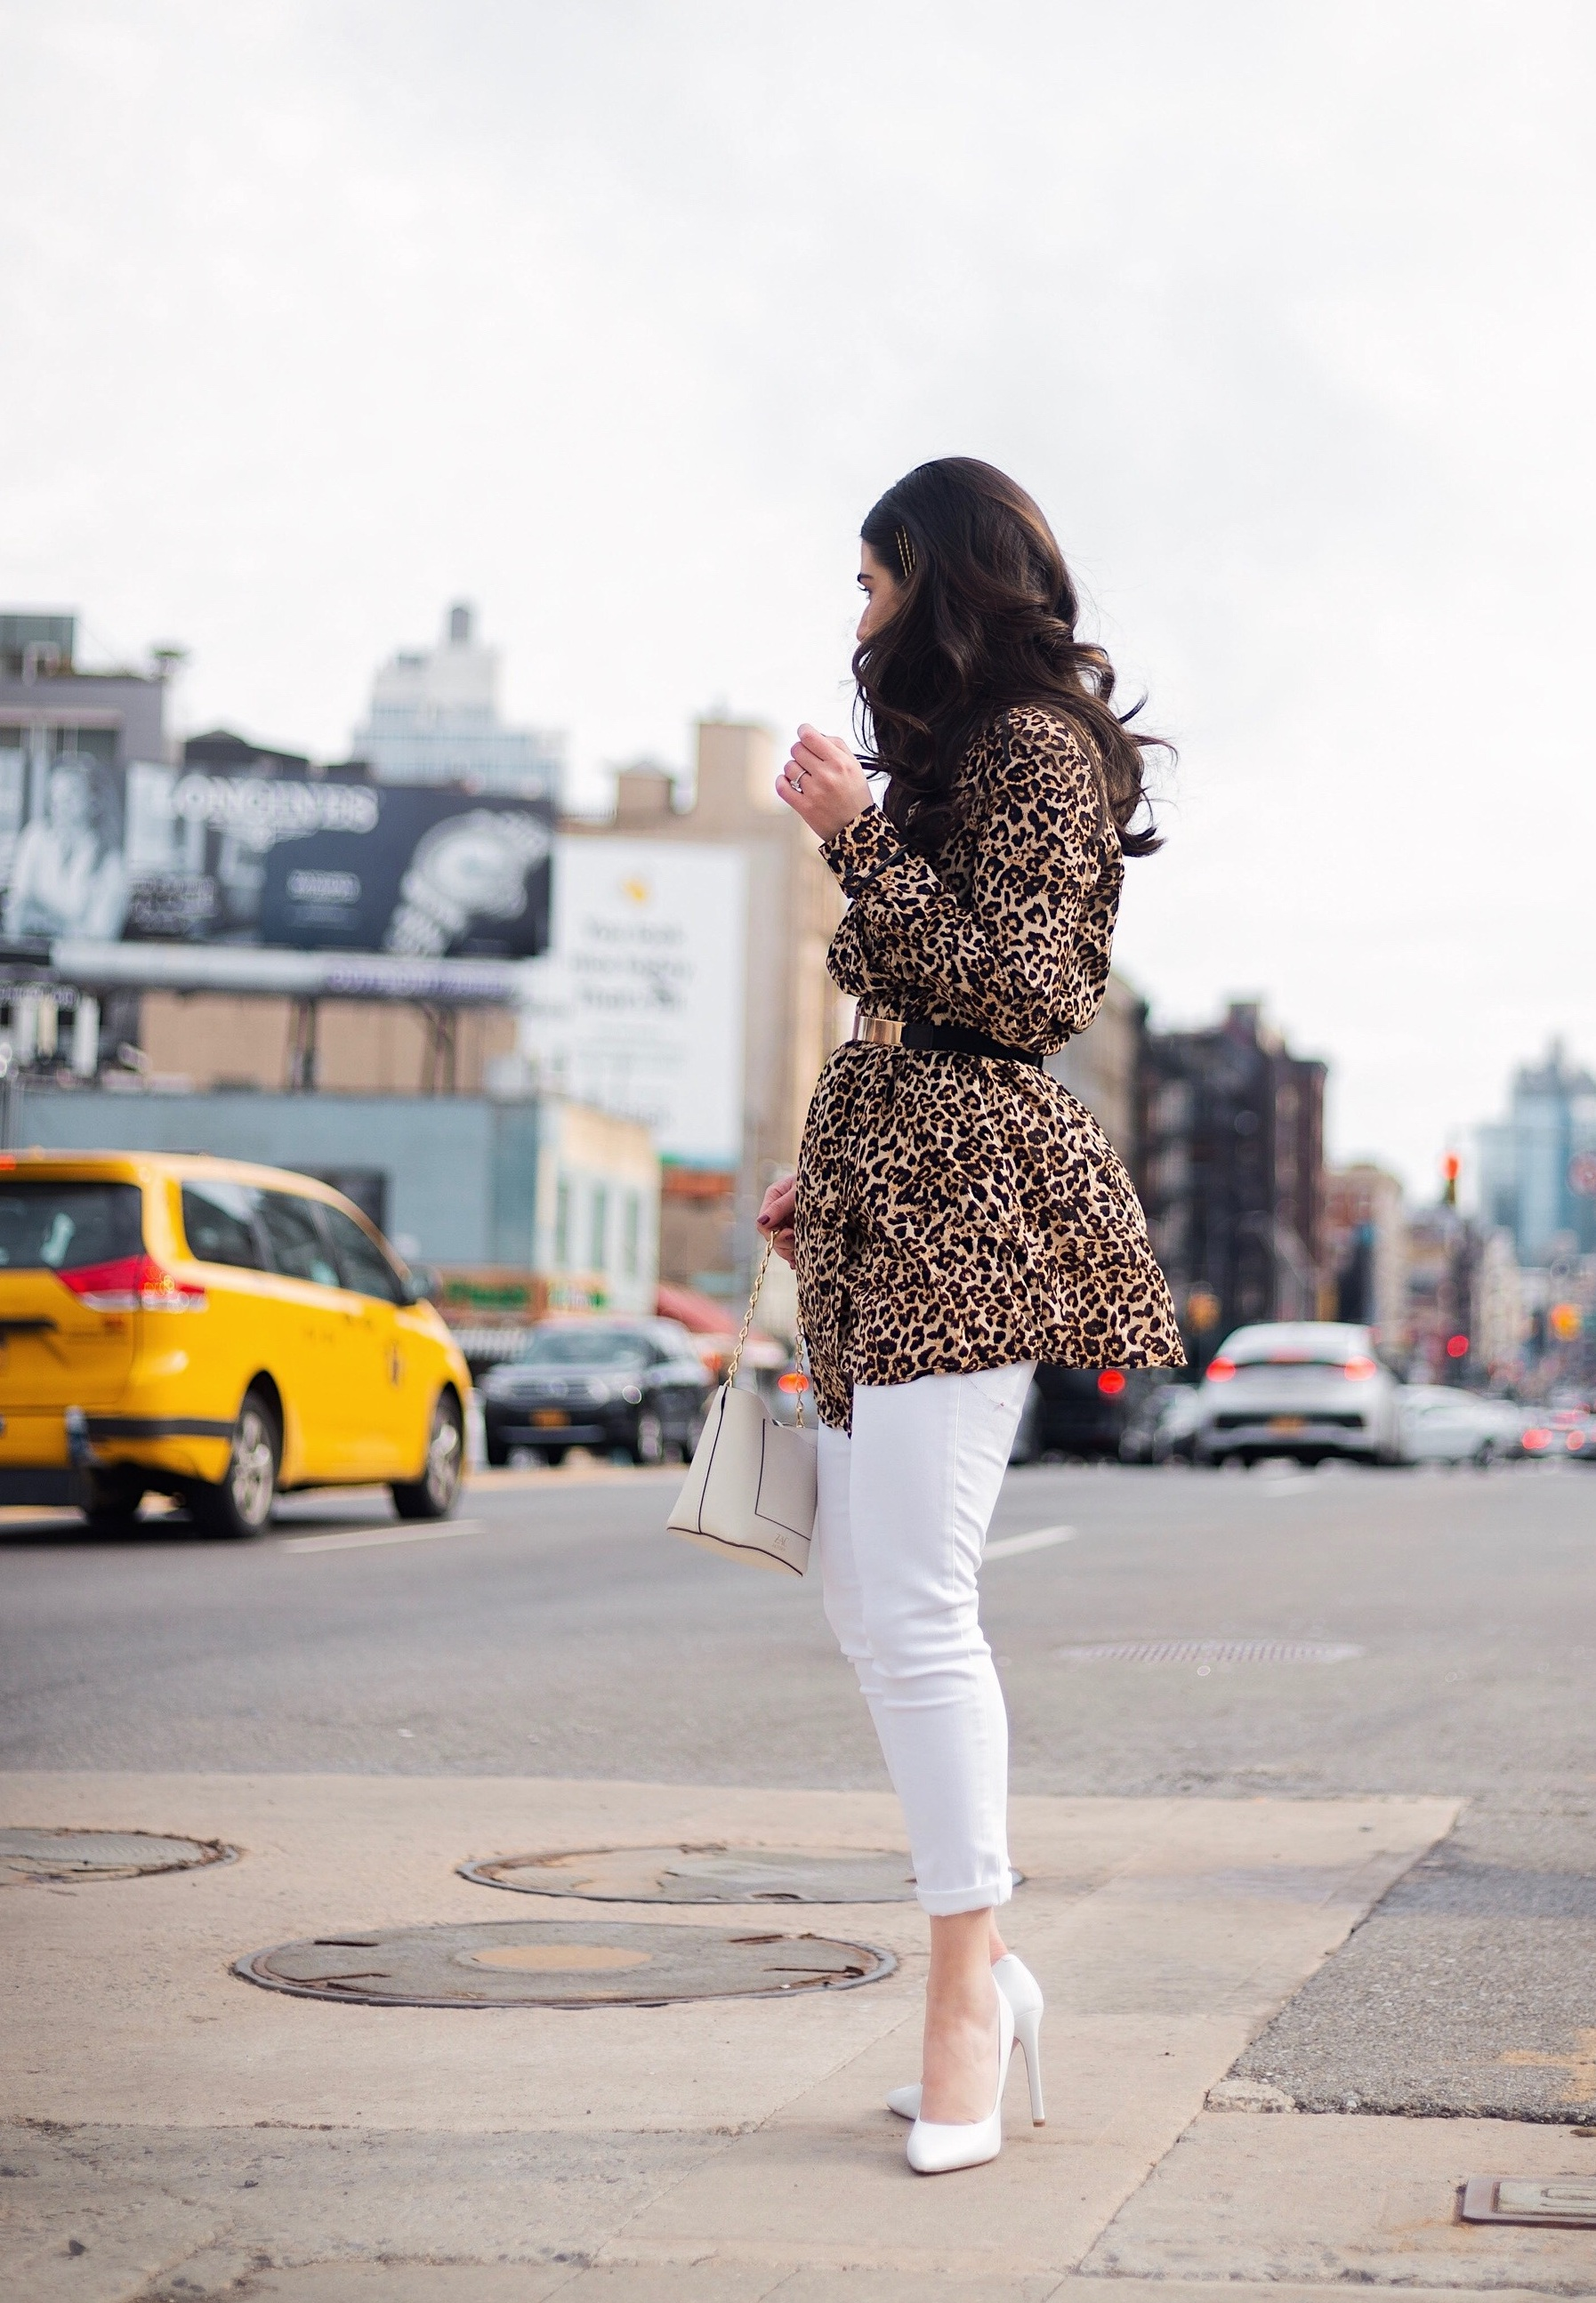 Dressing Up My Democracy Denim Esther Santer Fashion Blog NYC Street Style Blogger Outfit OOTD Trendy Shopping White Jeans Leopard Top Coat Inspo Bobby Pins Hair Trend White Heels Wear Chaya Ross Photography Gold Belt Cream Chain Small Bag Inspiration.jpg